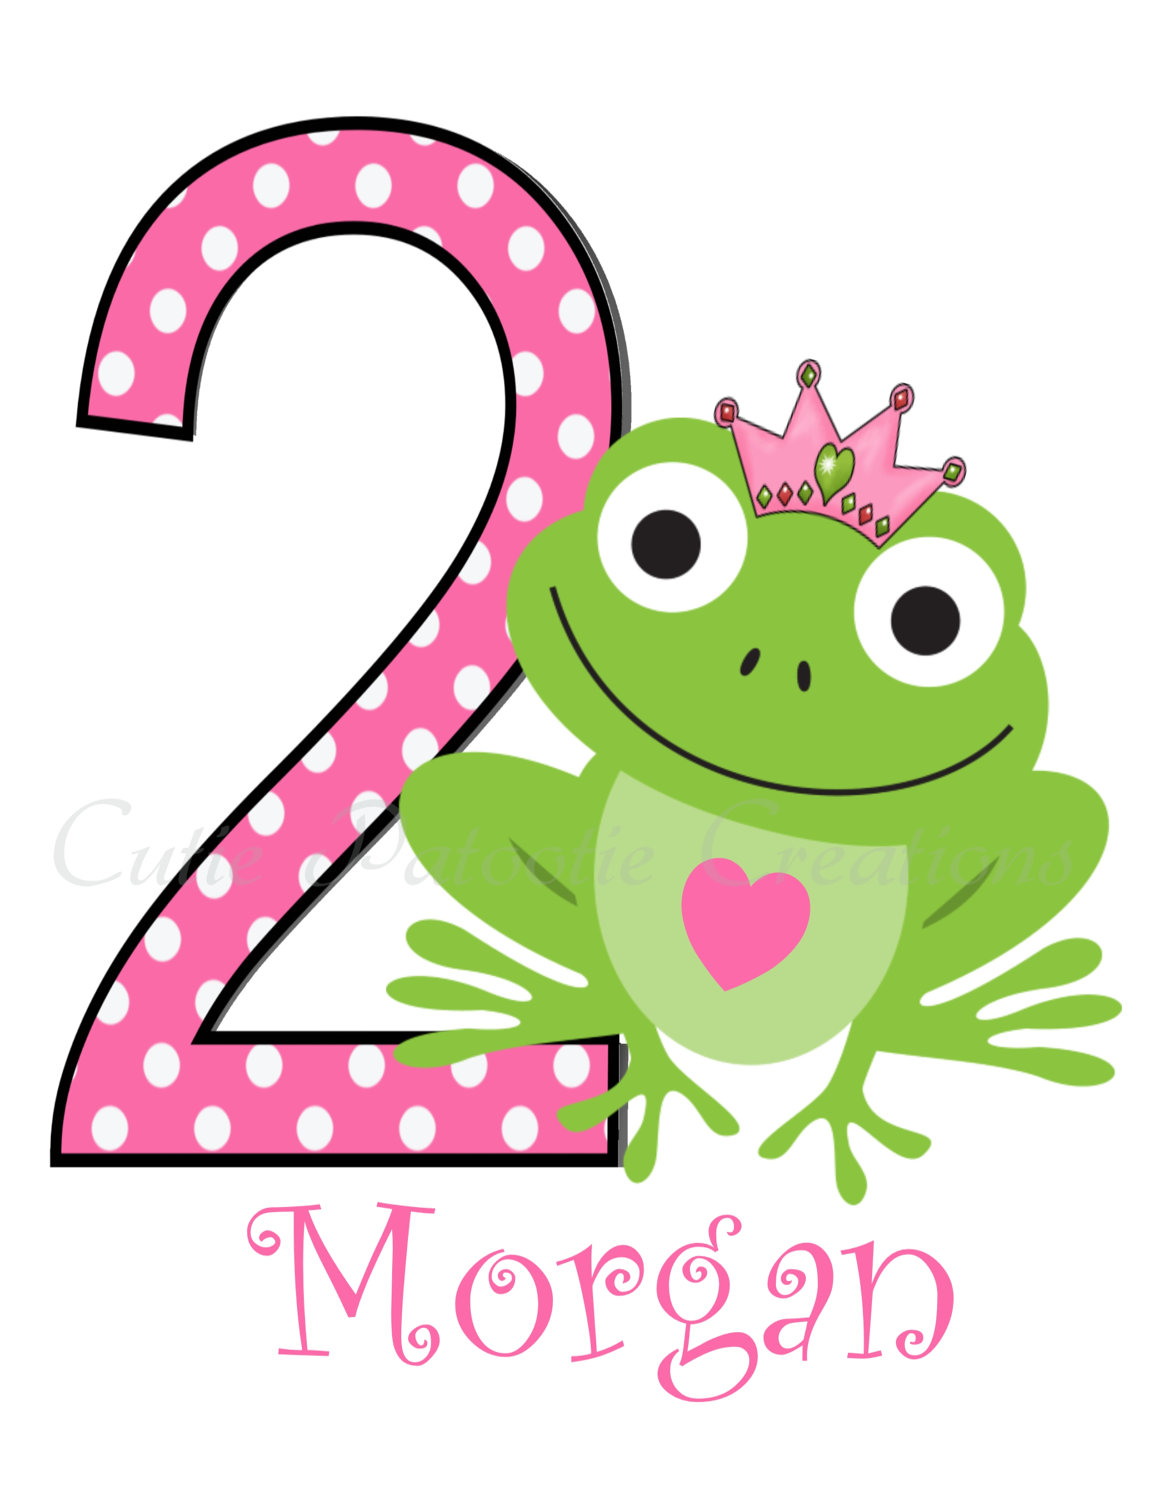 Free Princess And The Frog Clipart, Download Free Clip Art.